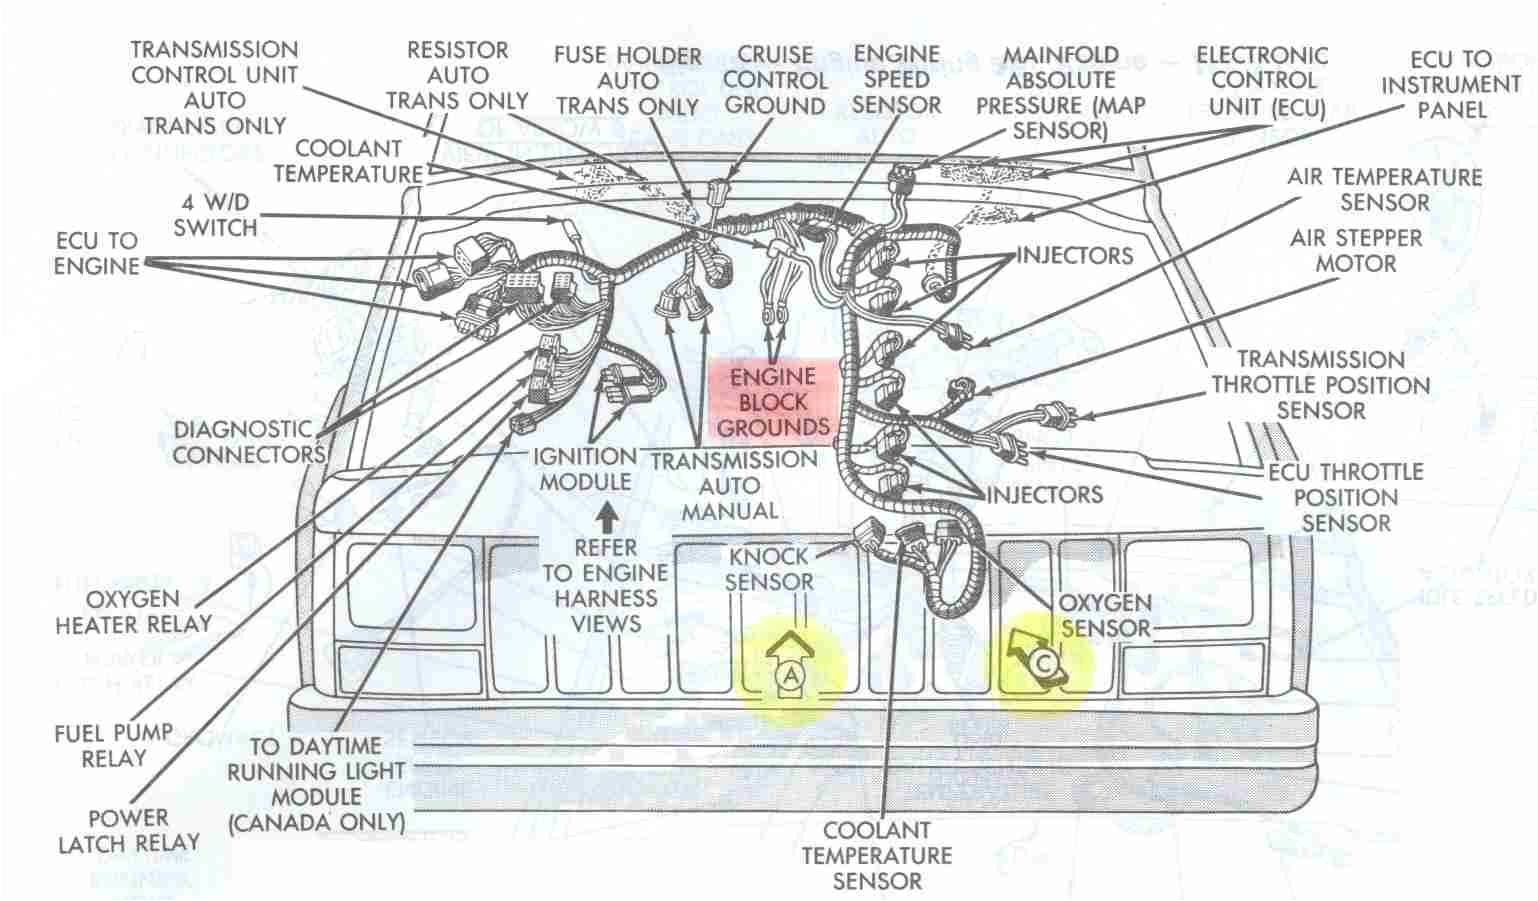 jeep cherokee wire harness wiring diagrams jeep xj wiring harness diagram jeep cherokee wiring harness diagram